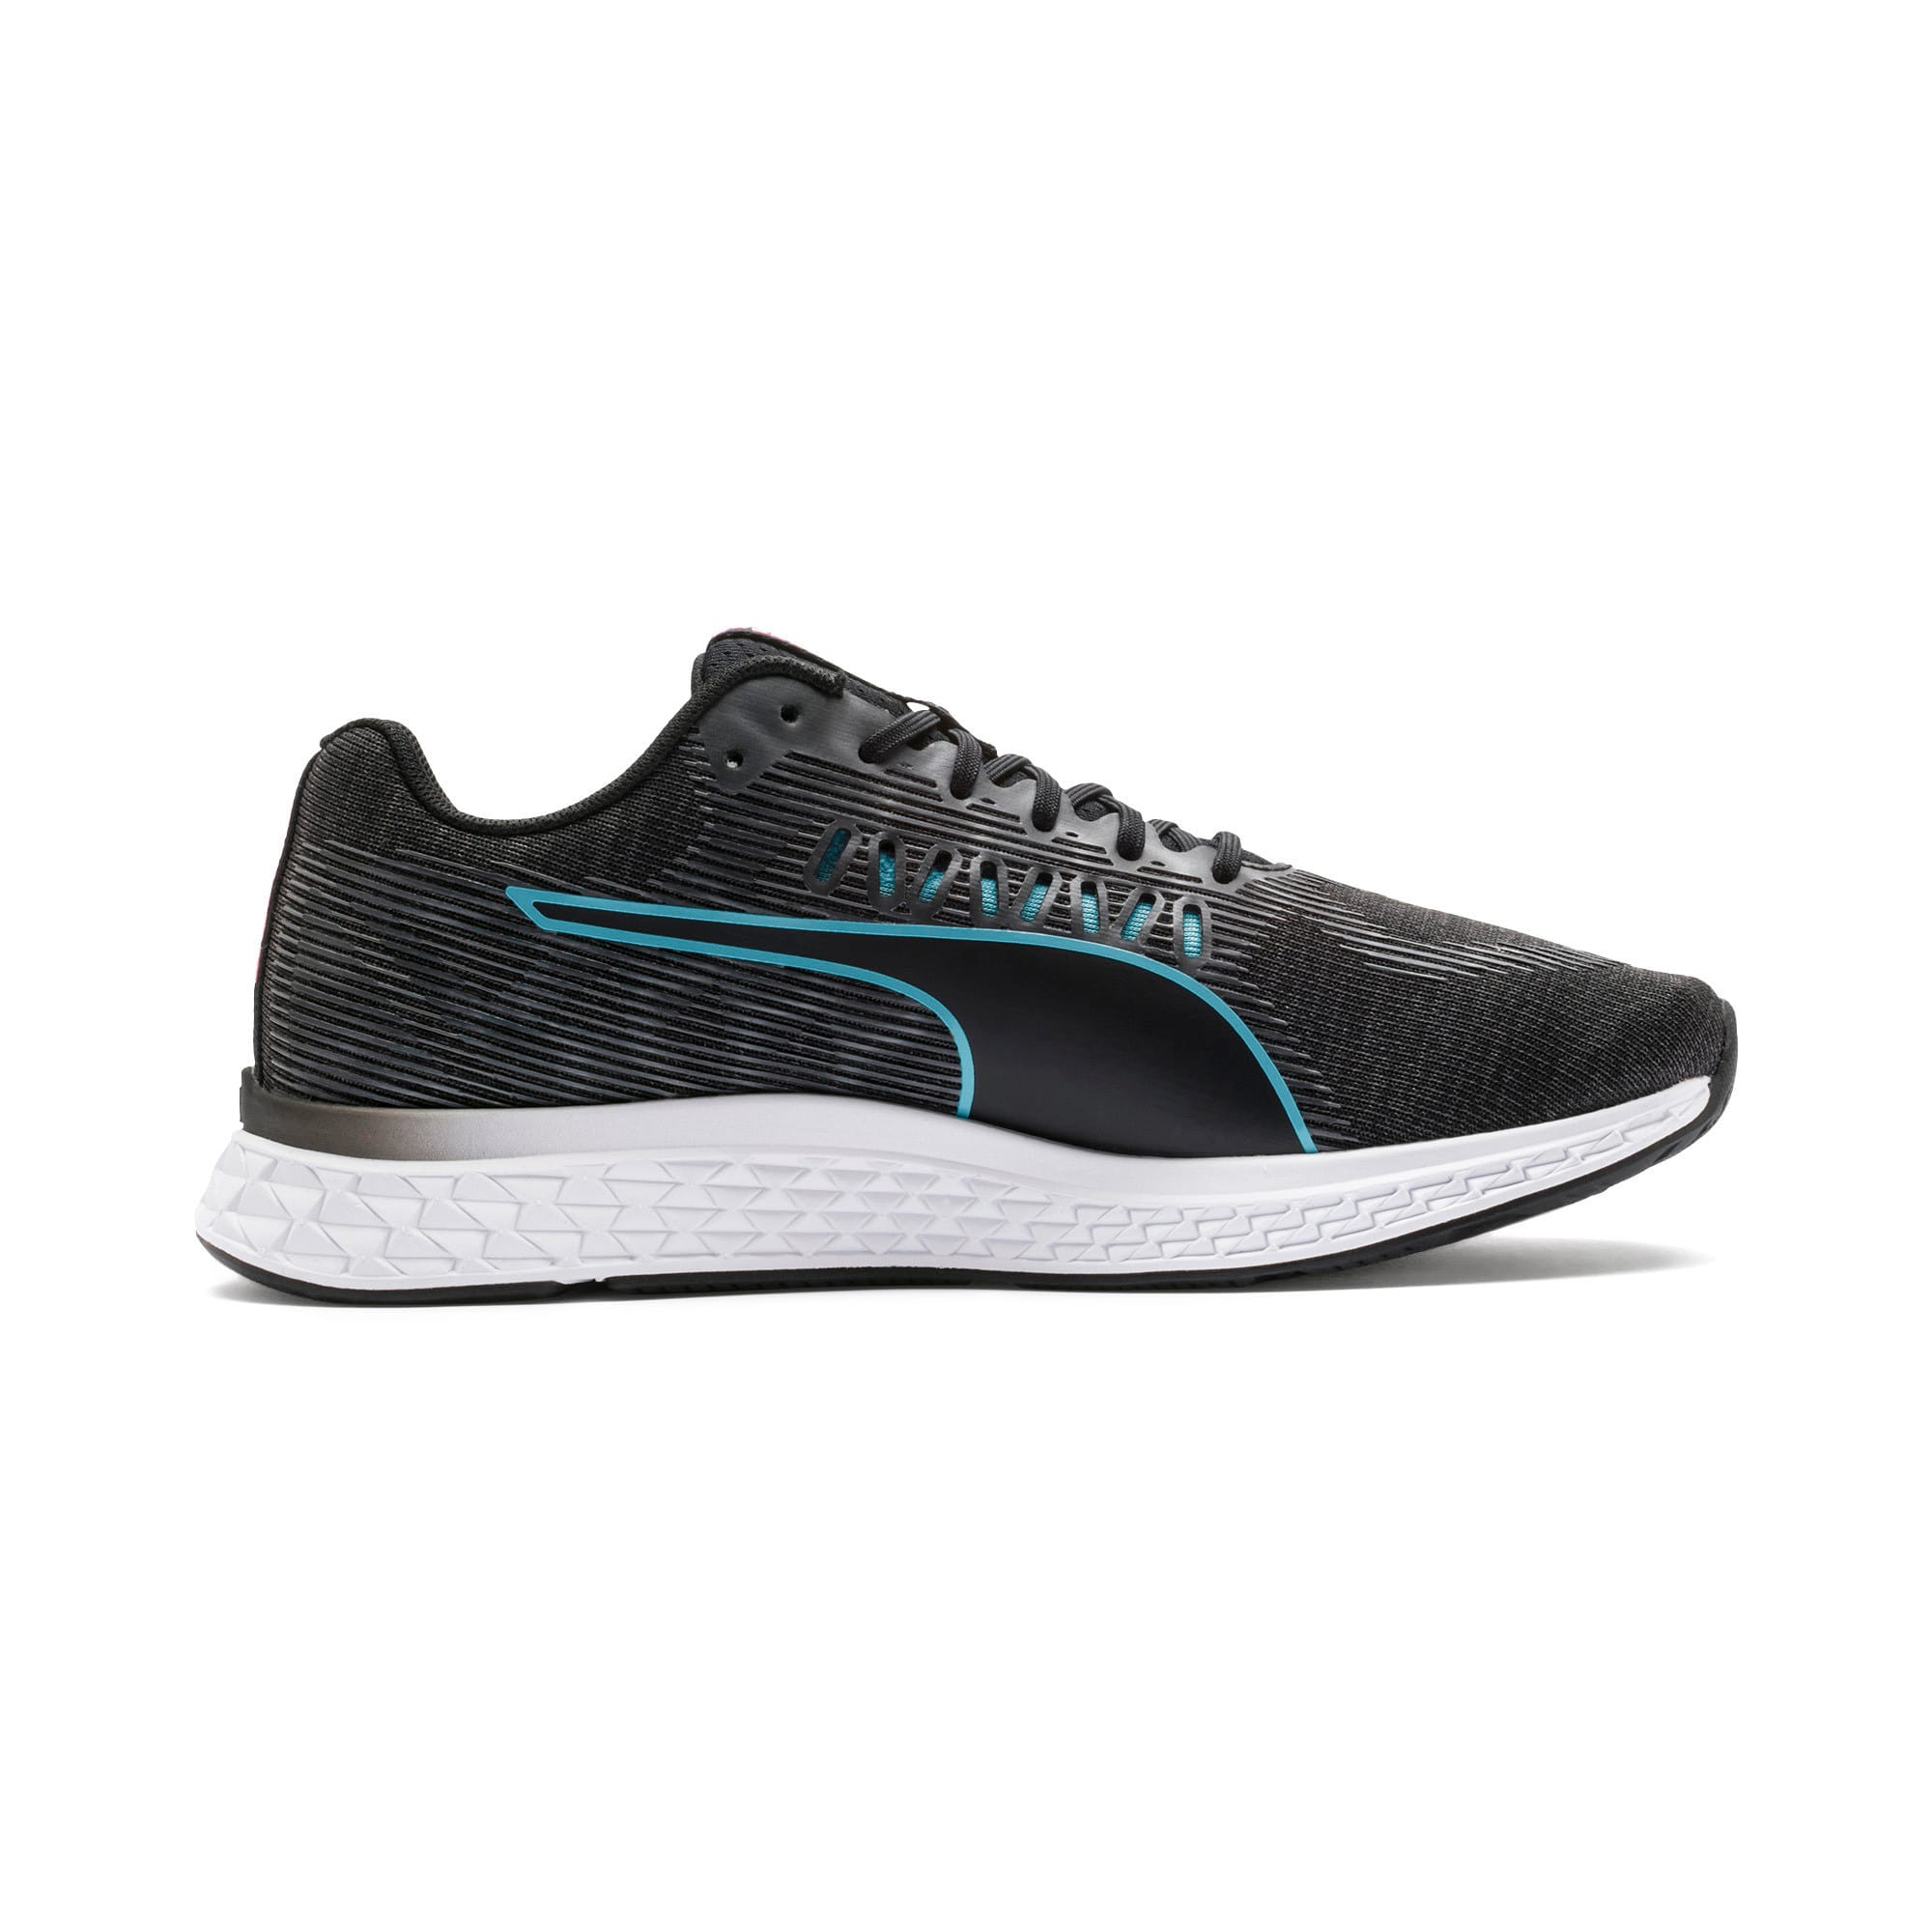 Thumbnail 7 of SPEED Sutamina Women's Running Shoes, Black-Milky Blue-Pink Alert, medium